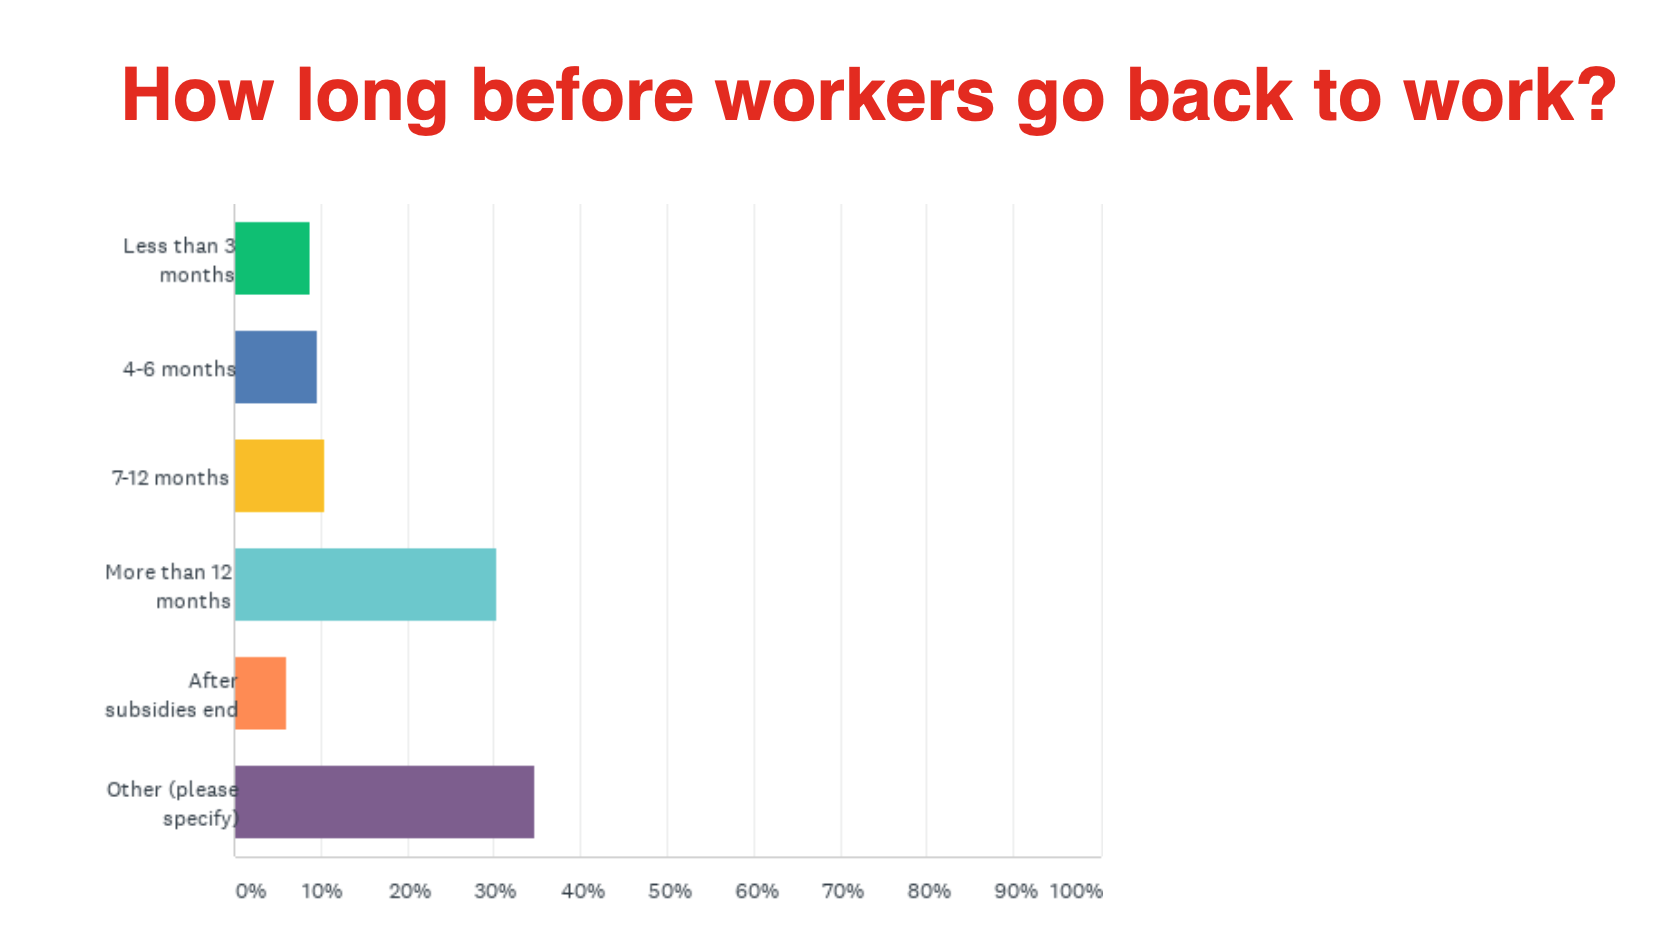 How long before you look for work? 30% say more than 12 months